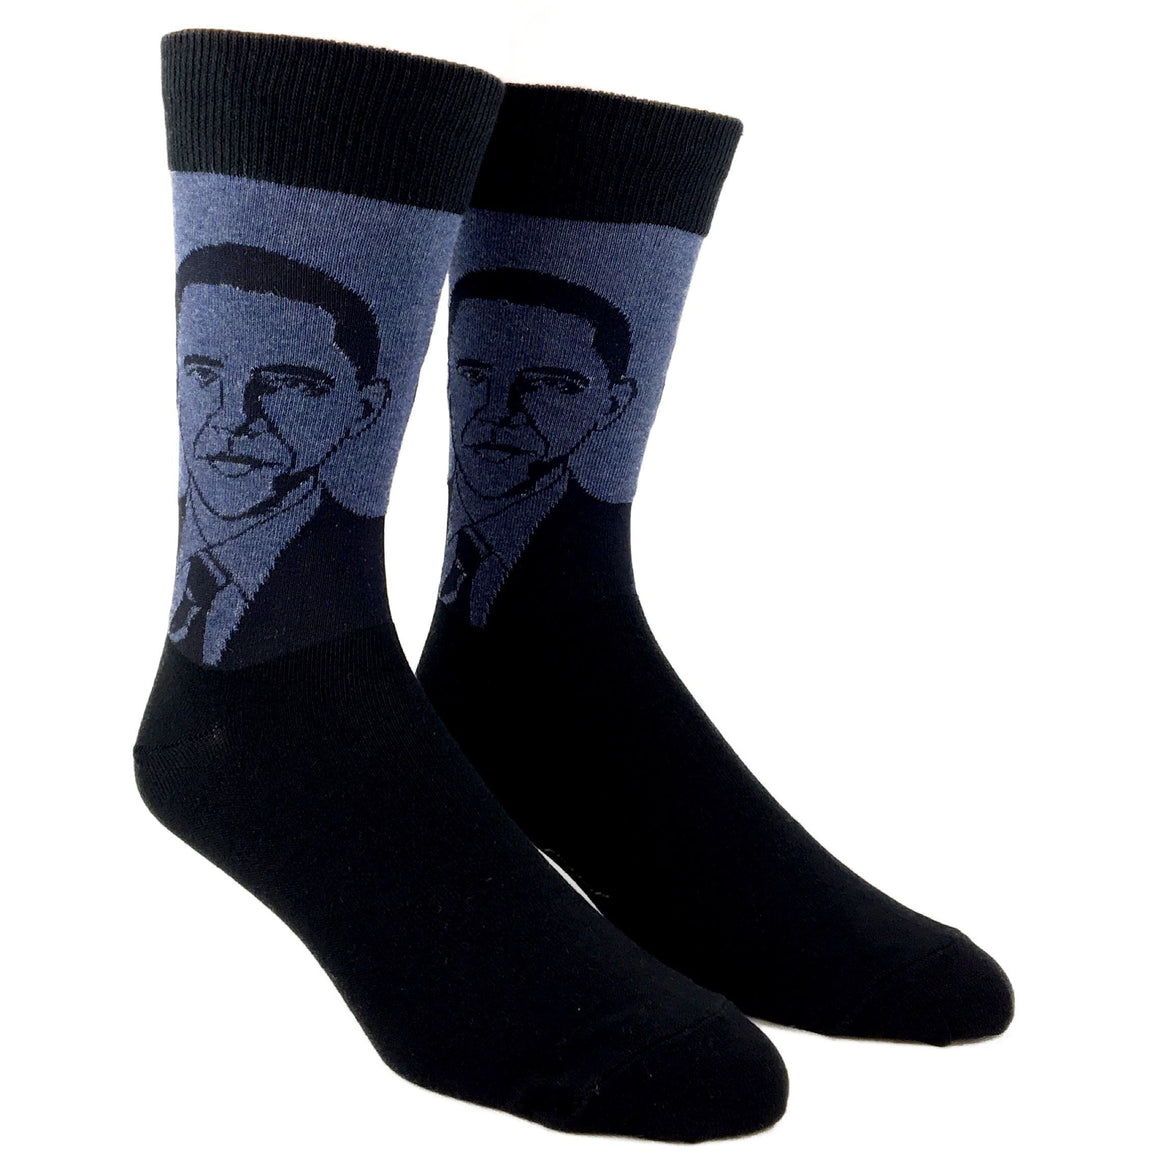 Barack Obama Socks in Blue by SockSmith - The Sock Spot